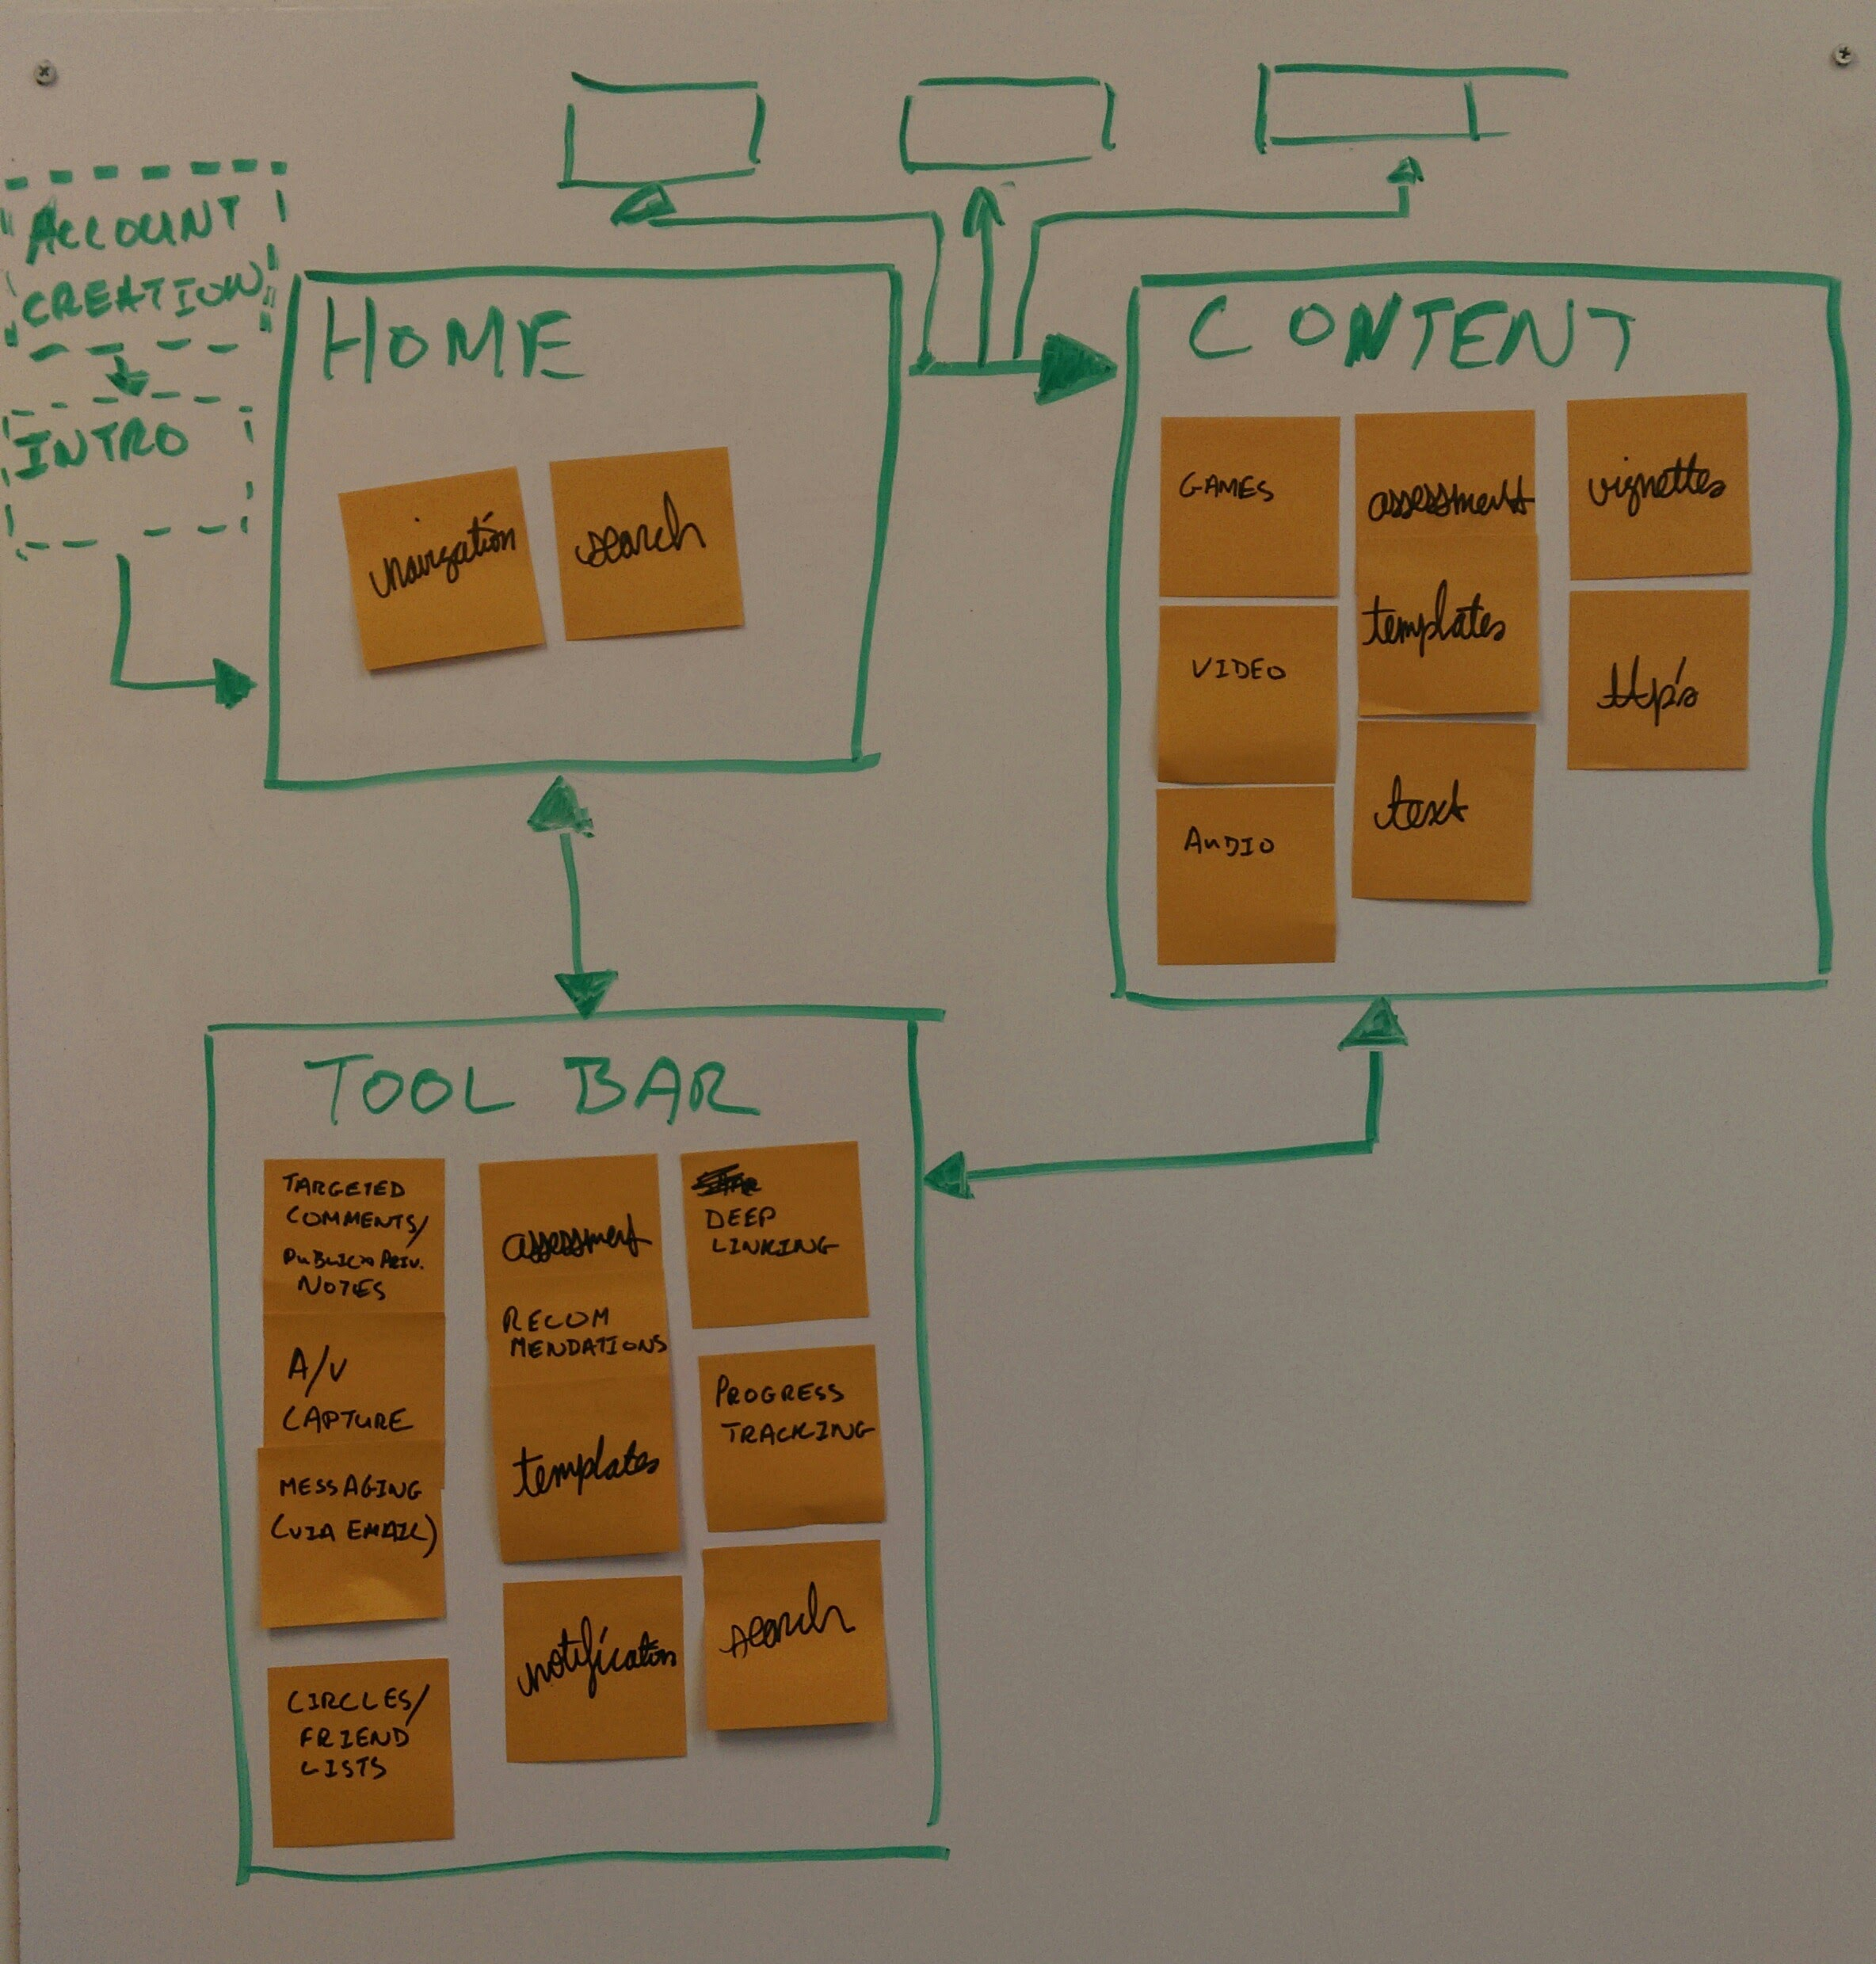 Planning out how to organize features within the product.